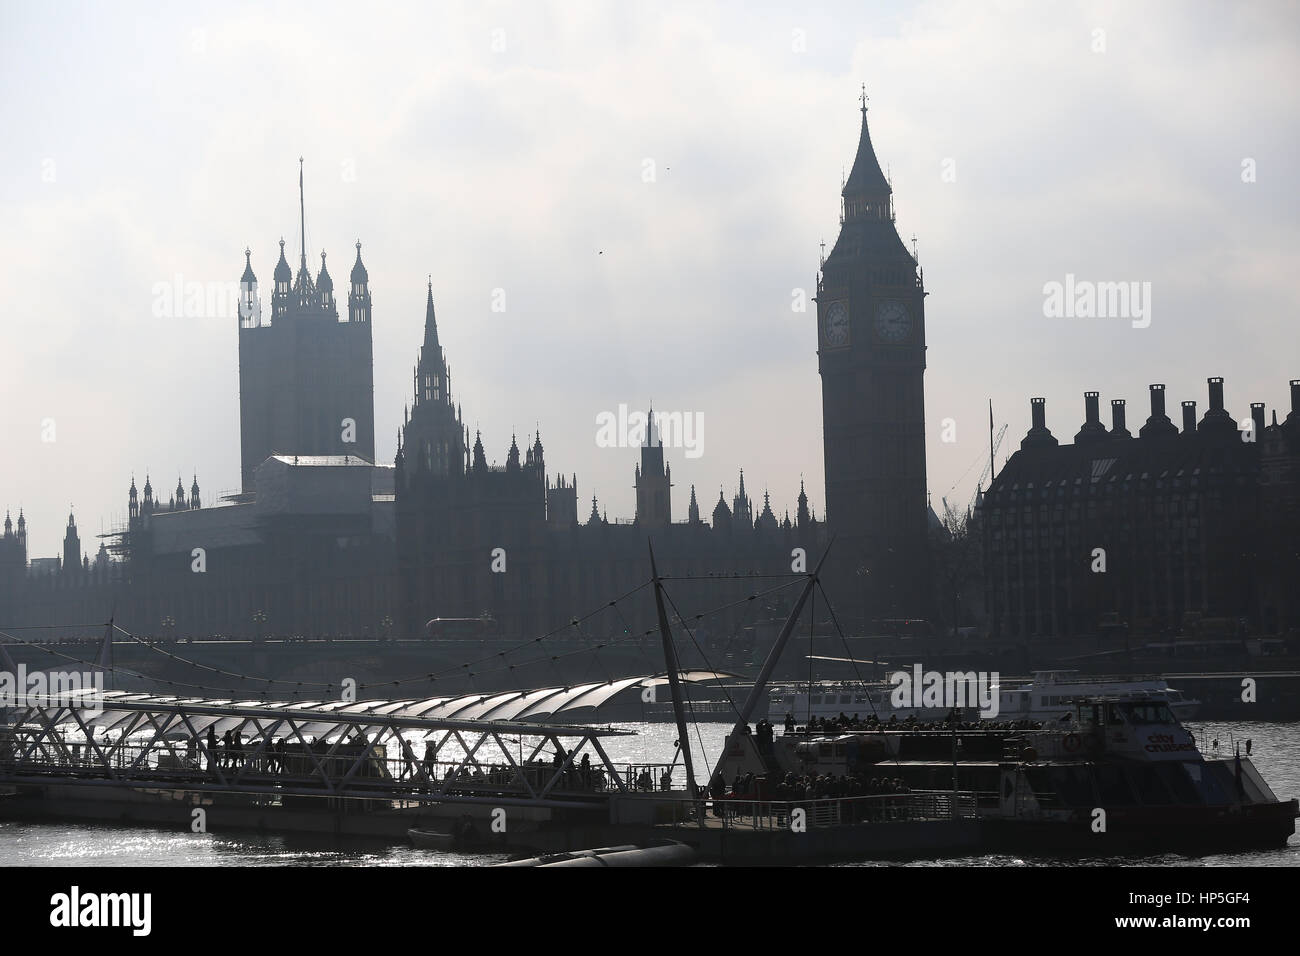 South Bank, London. Uk 18 Feb 2017 - People enjoy the mild temperatures along the South Bank. Credit: Dinendra Haria/Alamy Stock Photo